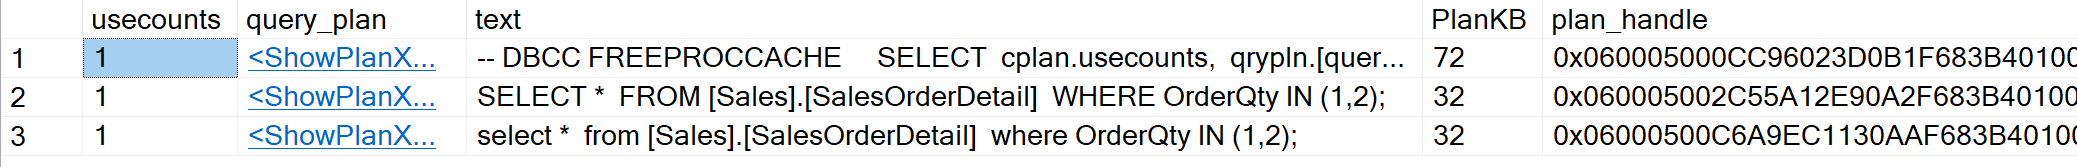 SQL SERVER - Same Result Same Query Plan - Different Entry in Cache cacheresult3